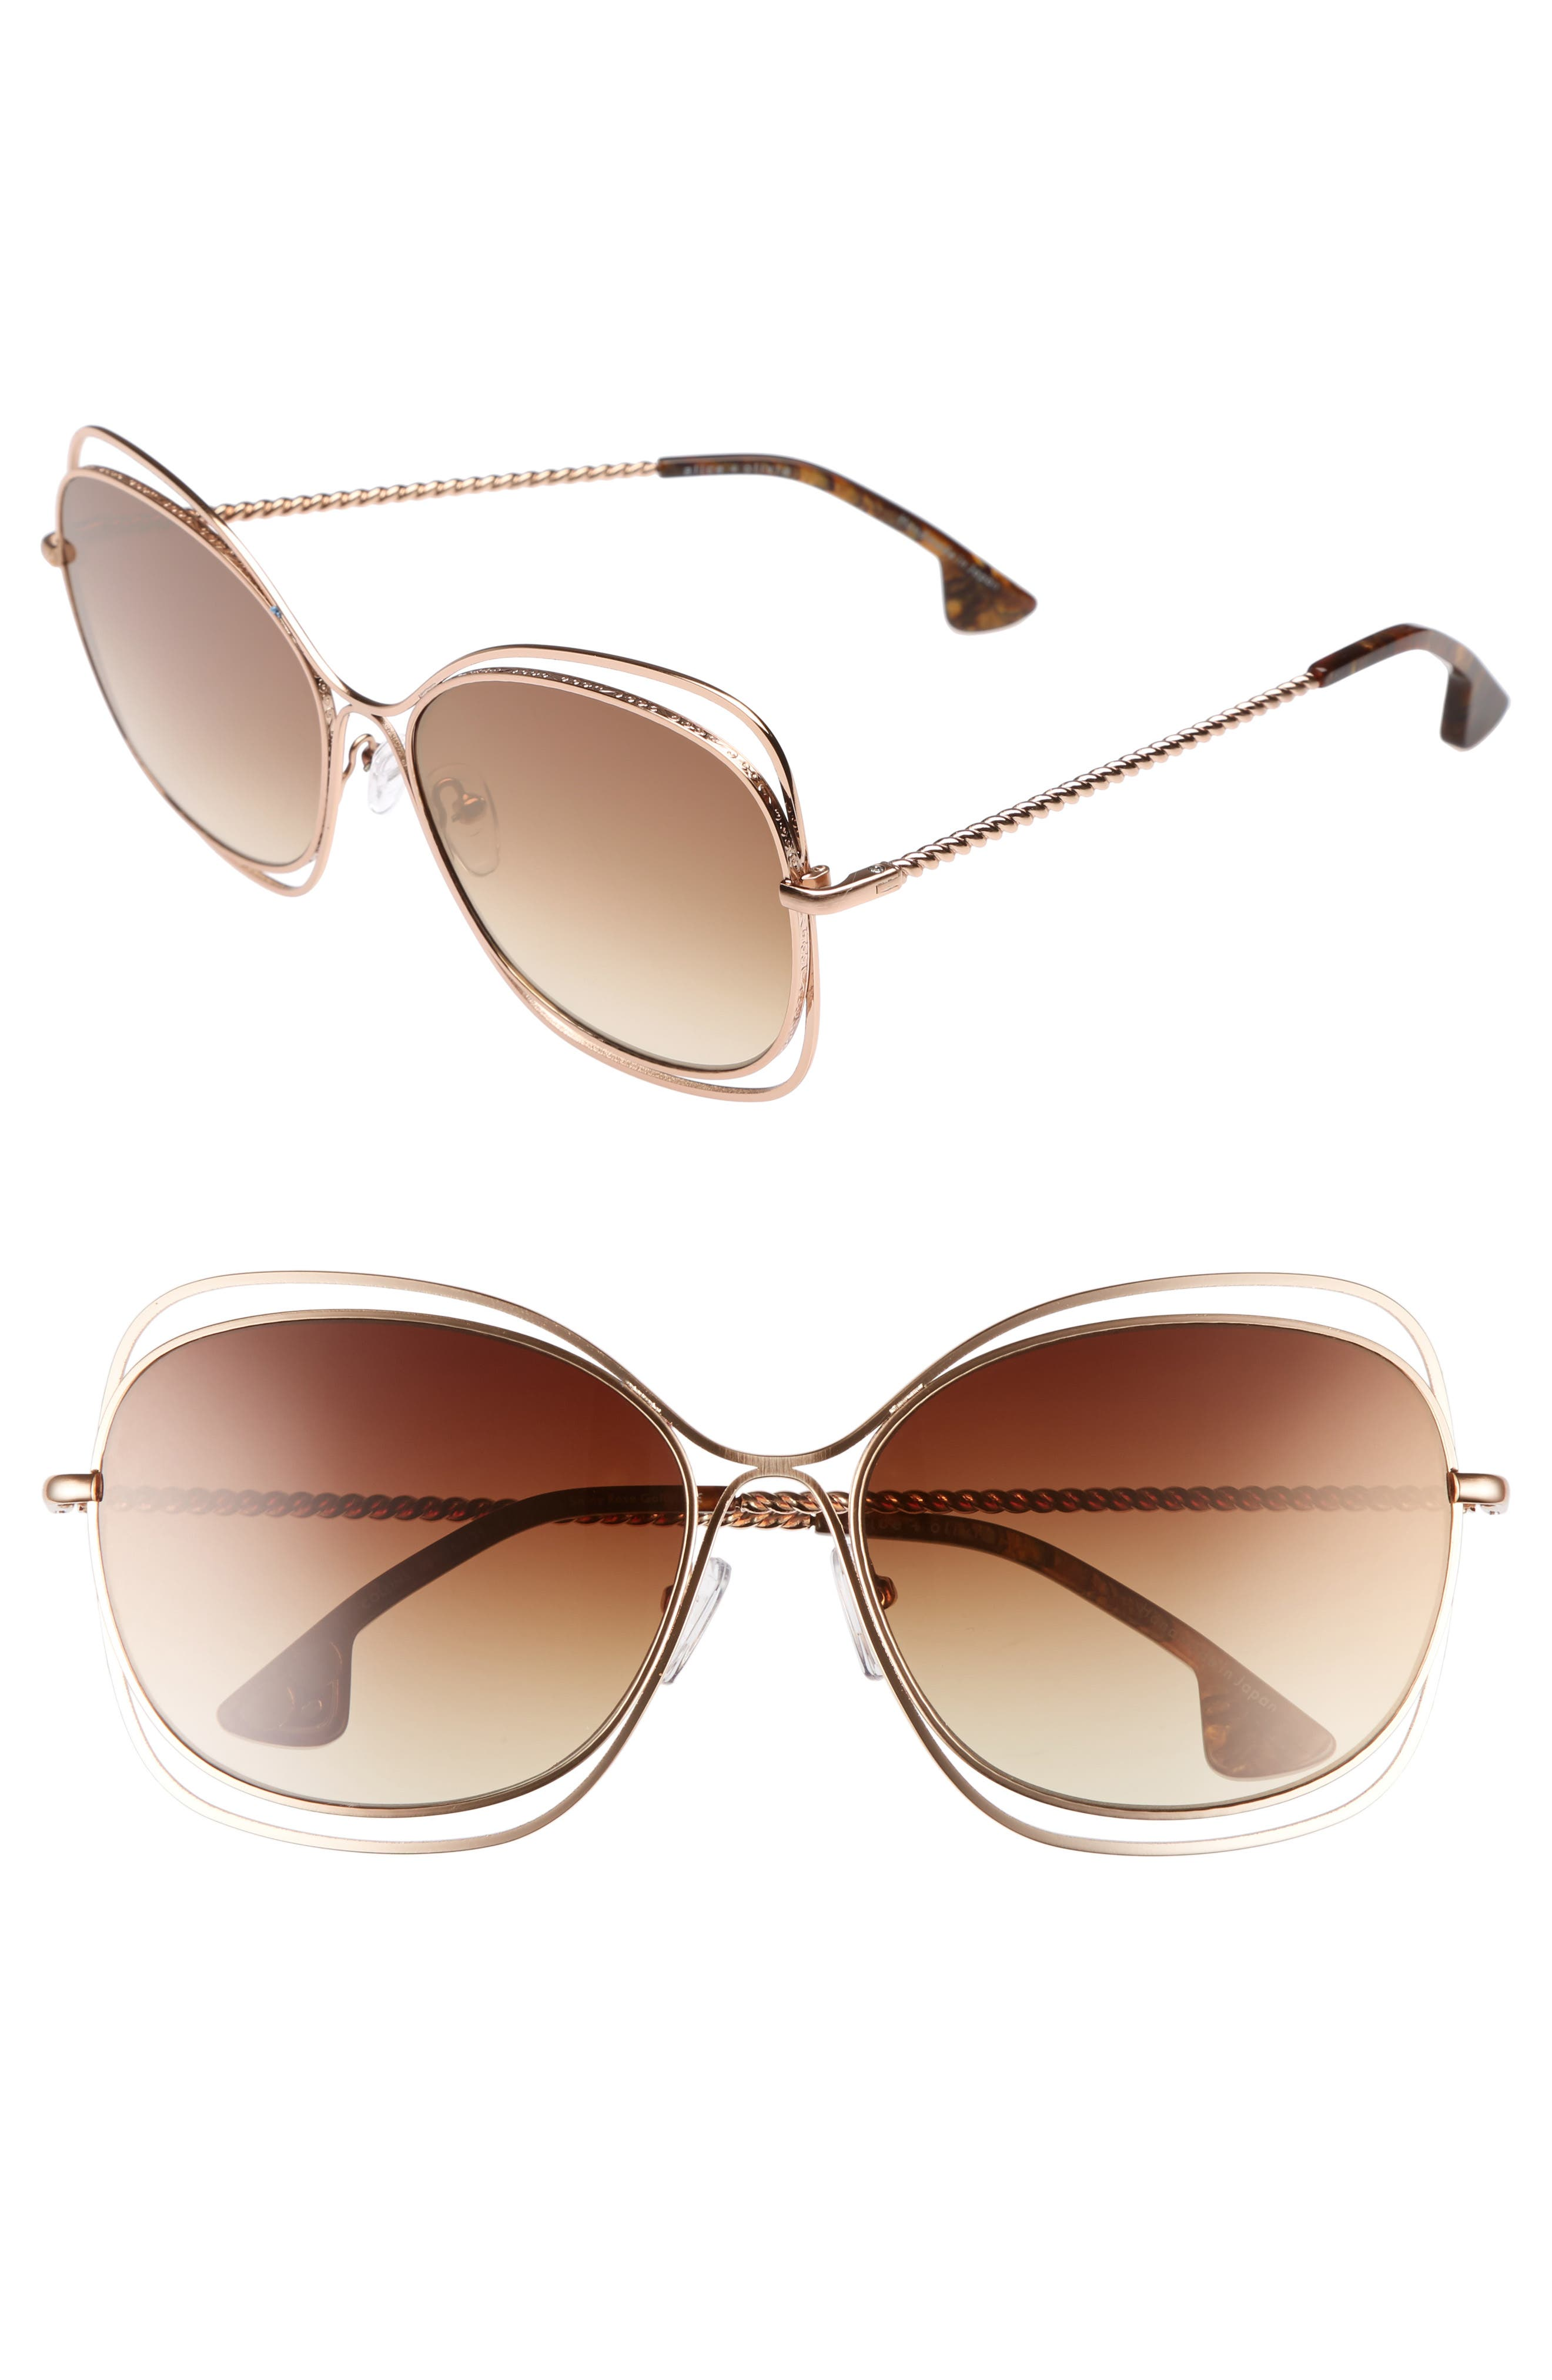 Collins 60mm Butterfly Sunglasses,                             Main thumbnail 1, color,                             220